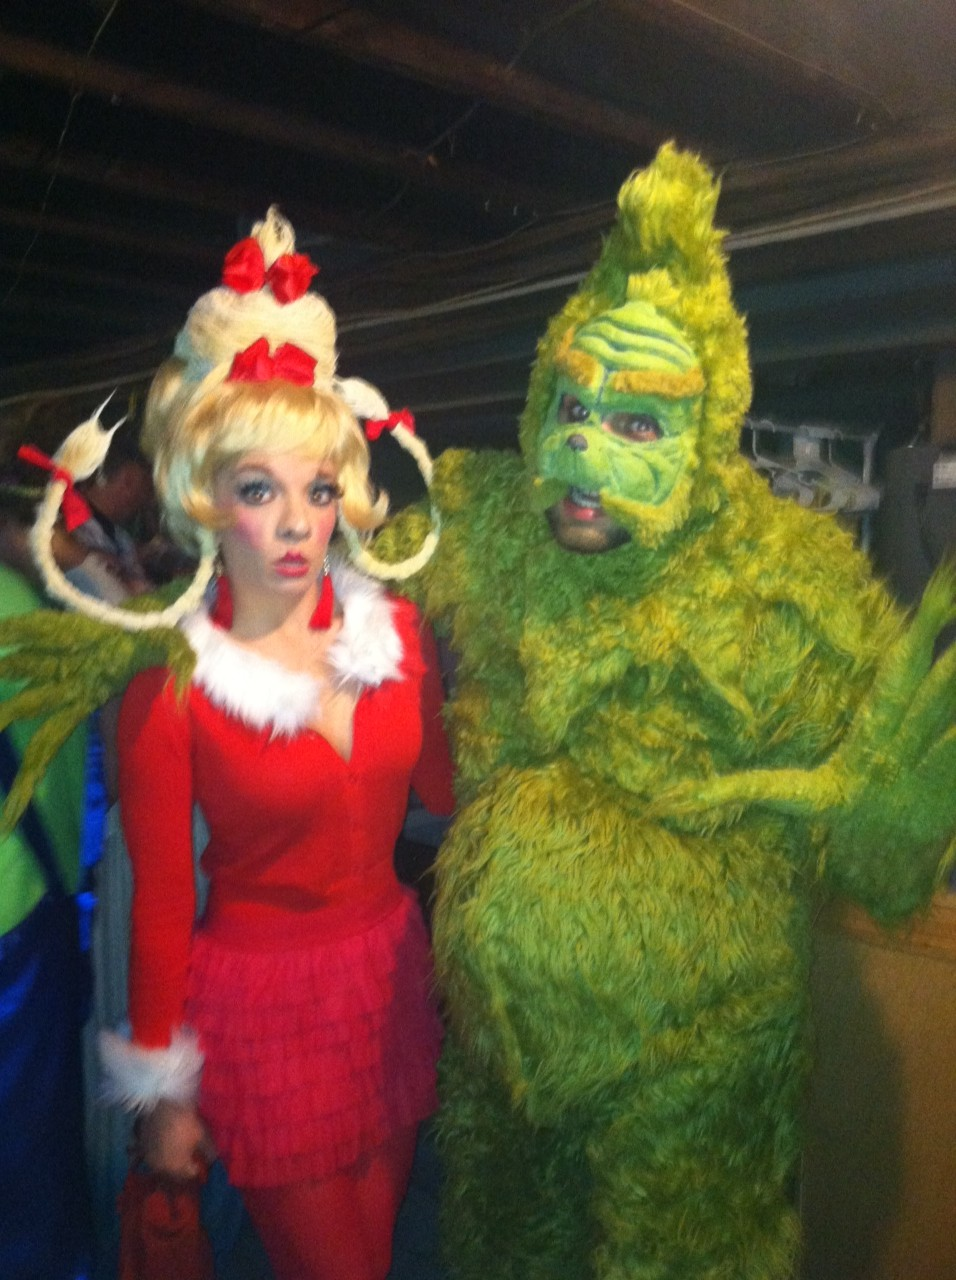 Adam Kreutinger Halloween The Grinch Who Stole Christmas